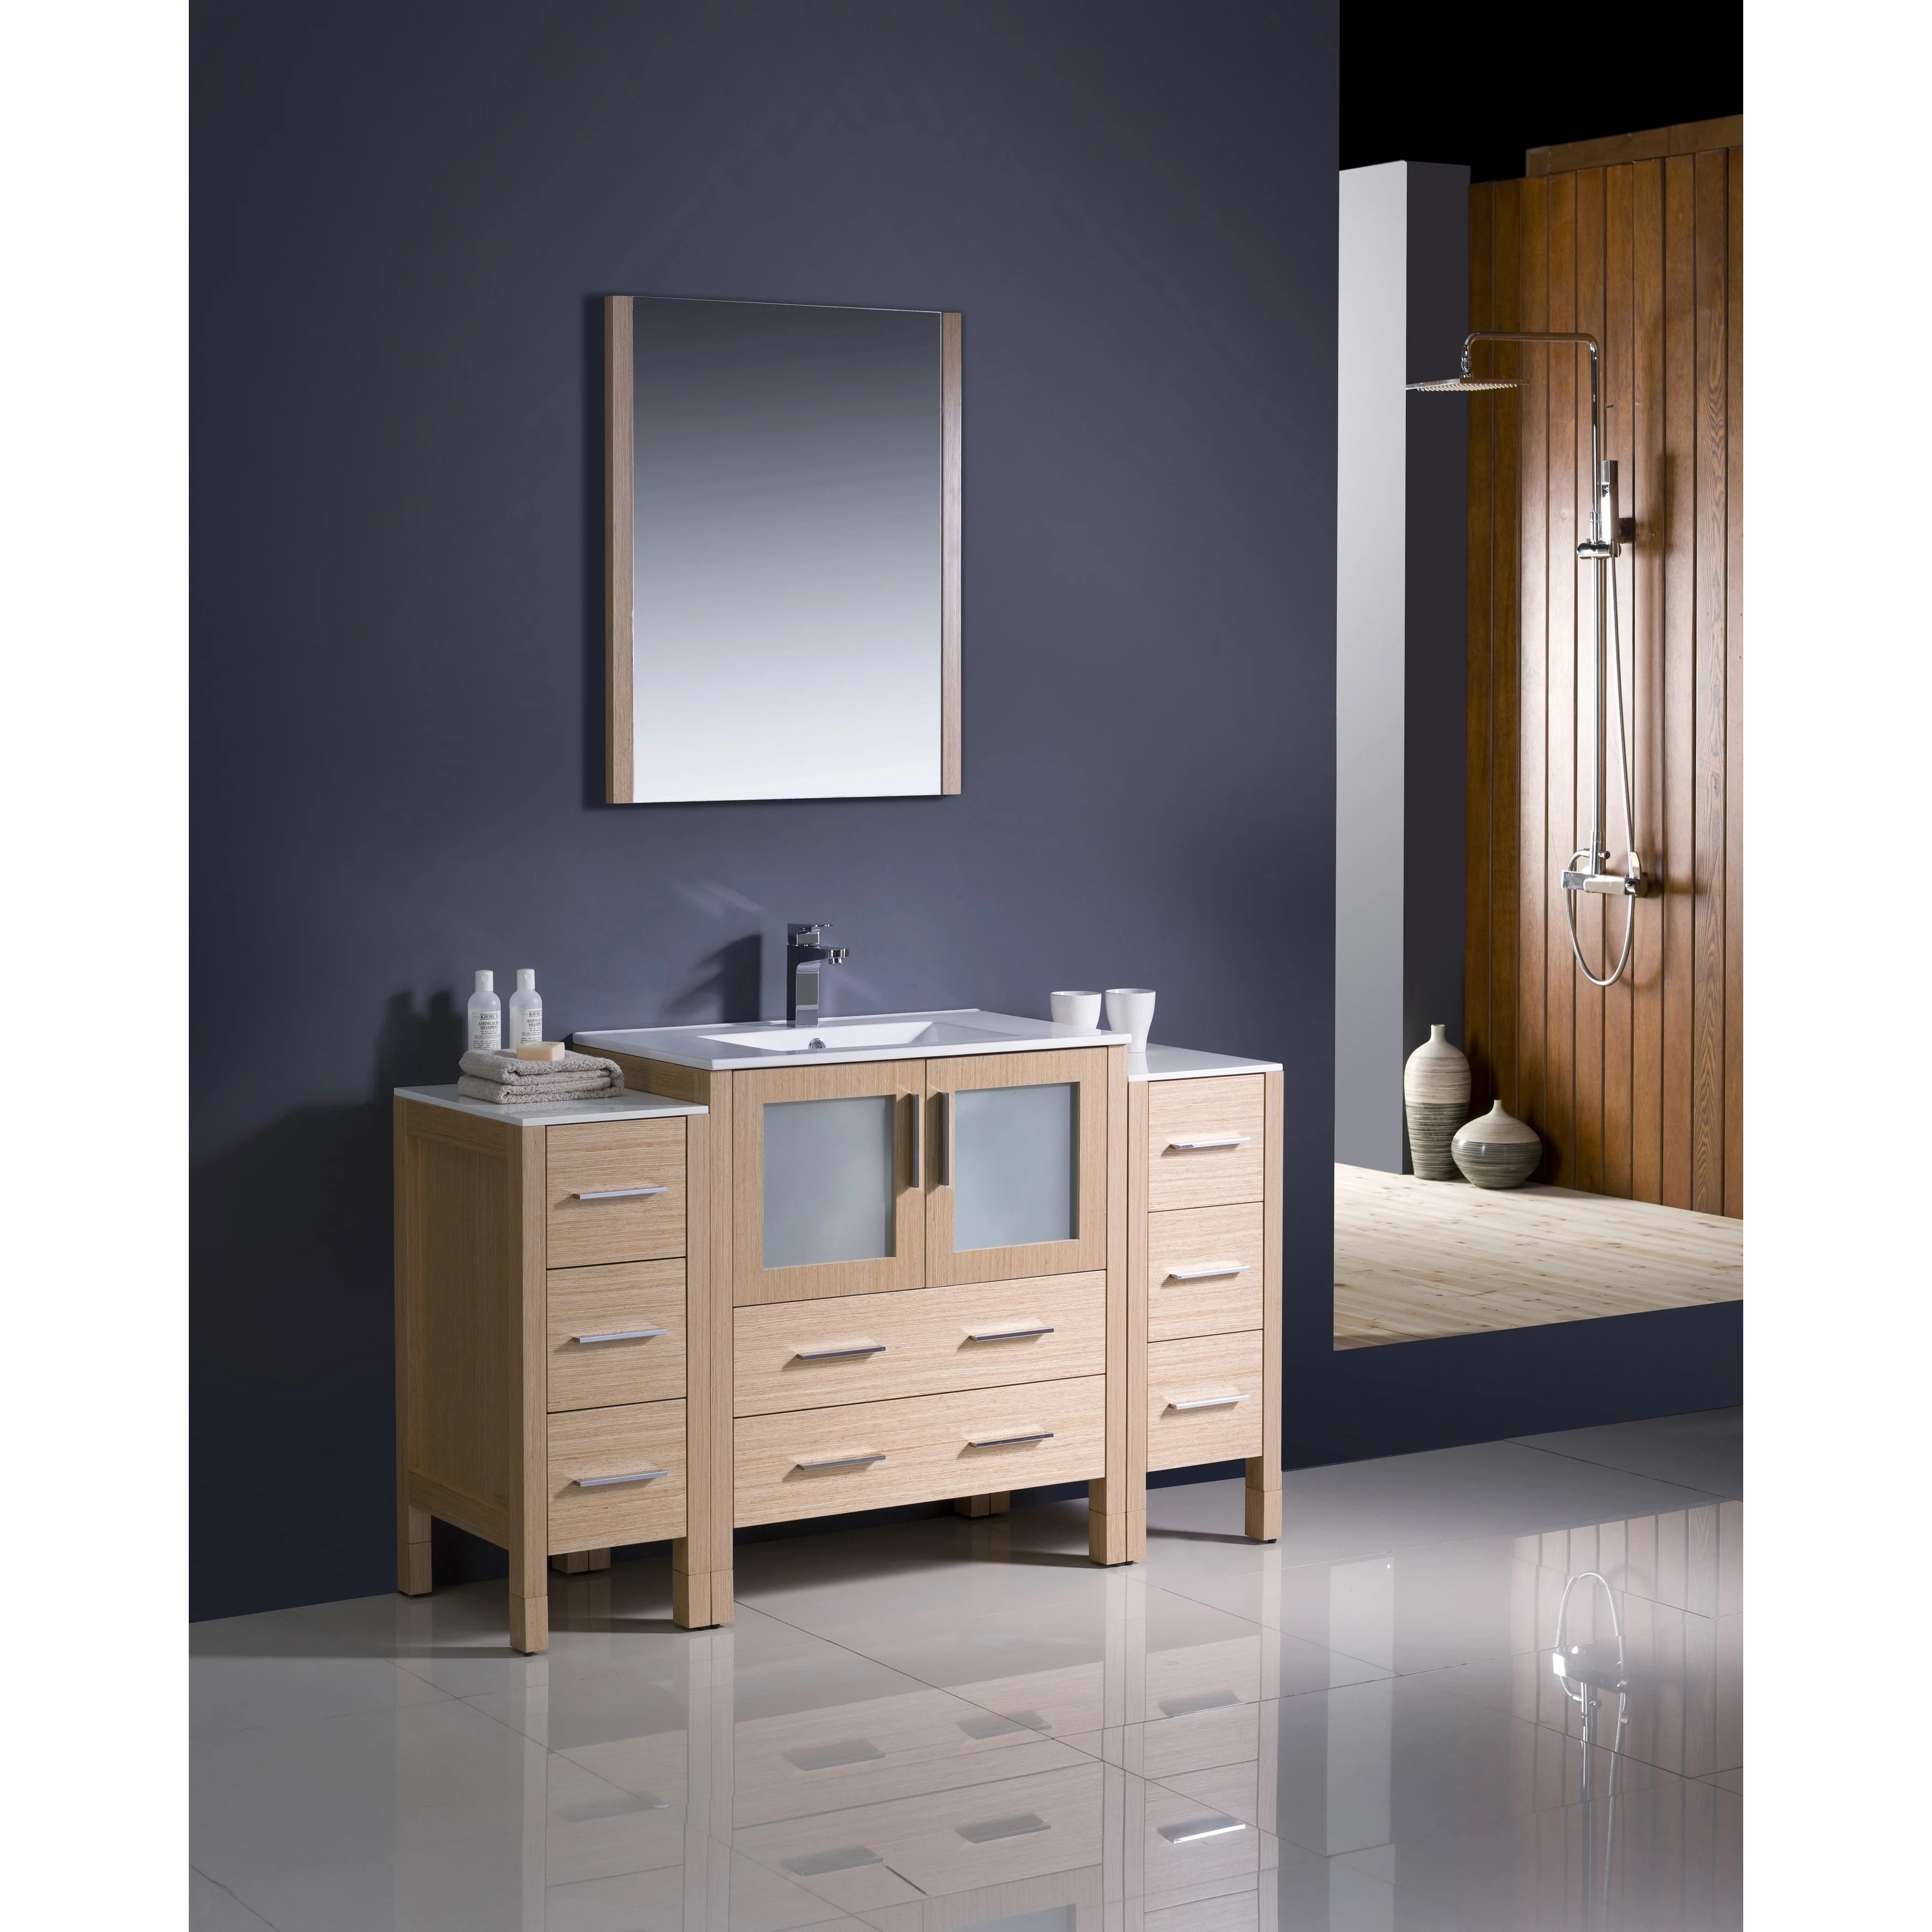 54 Bathroom Vanity Fresca Torino 54 Inch Light Oak Modern Bathroom Vanity With 2 Side Cabinets And Undermount Sink